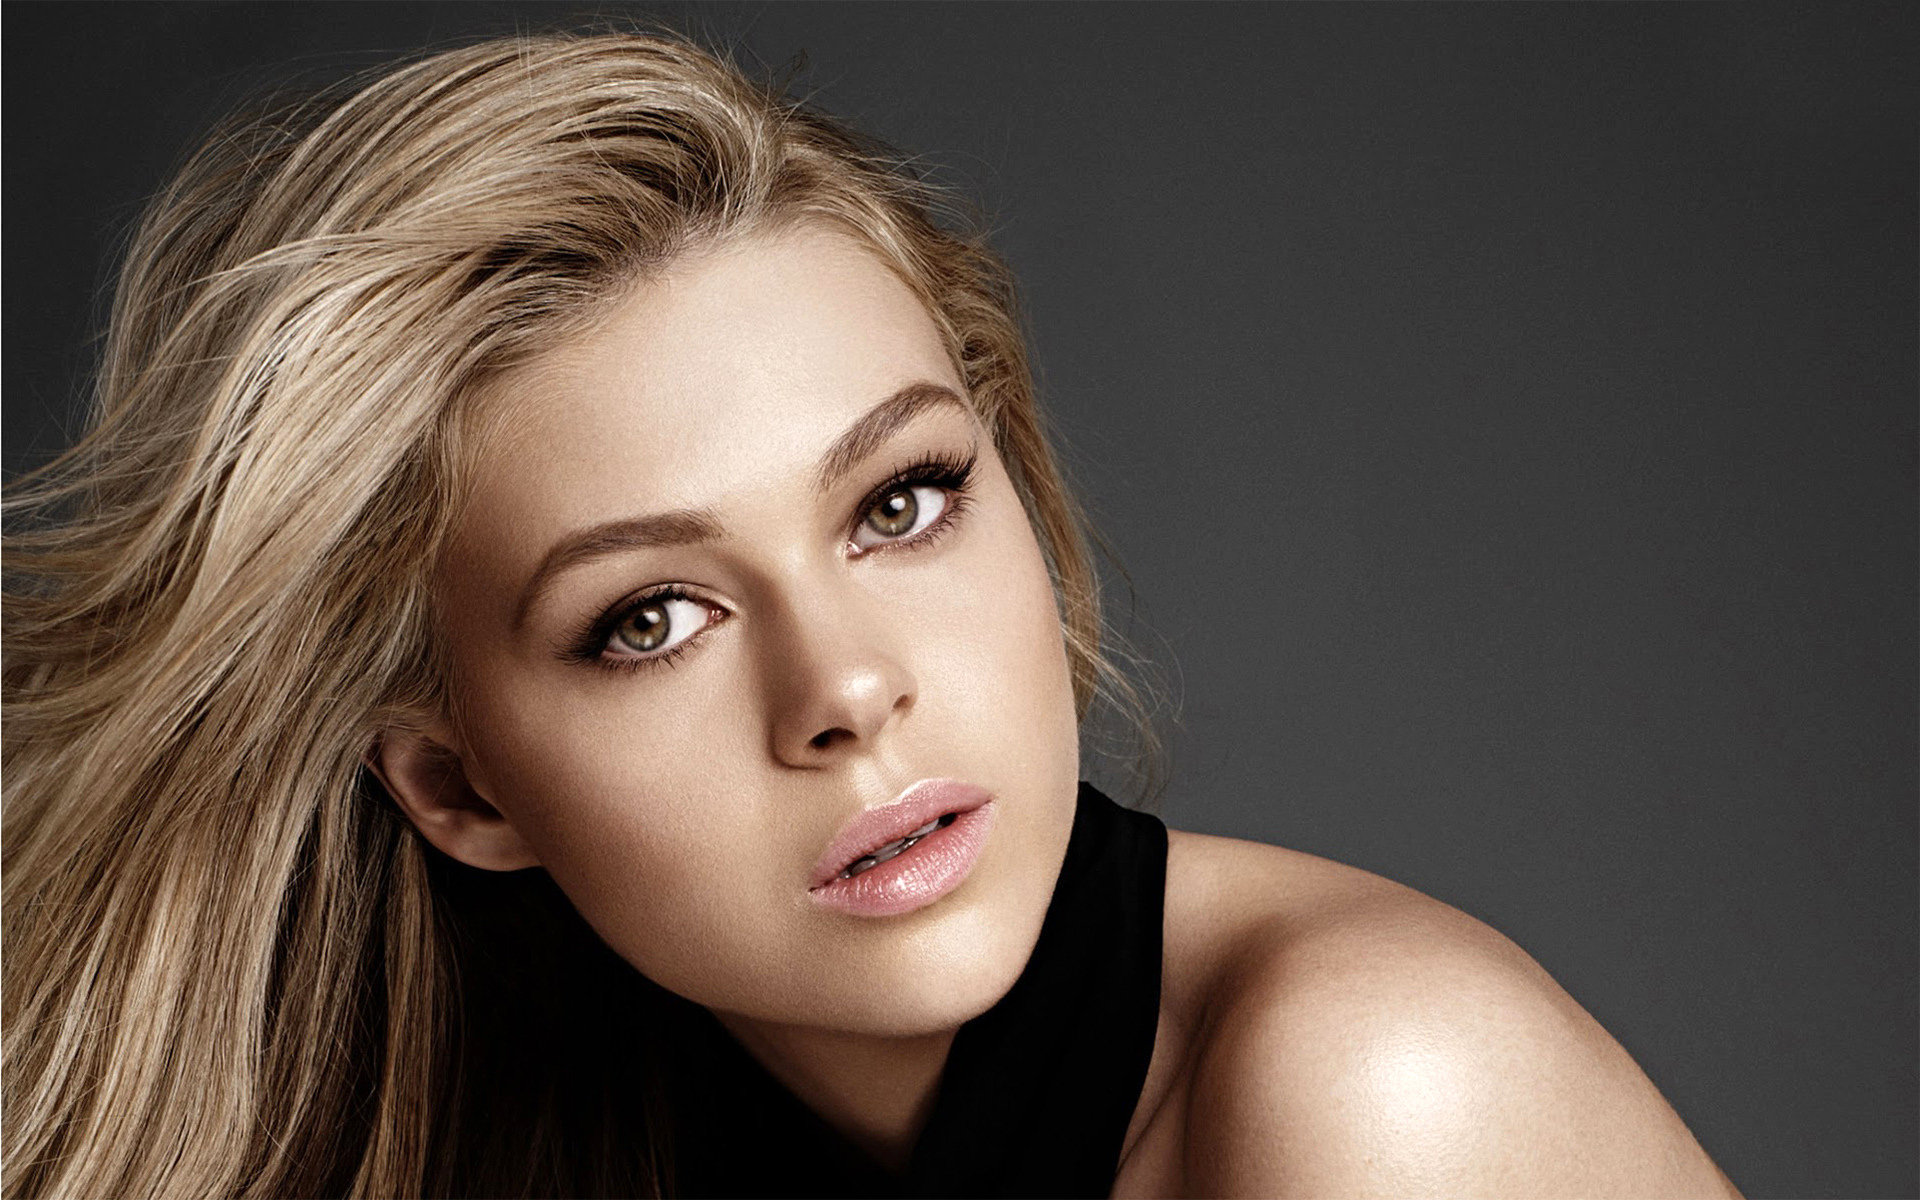 Awesome Nicola Peltz free background ID:130536 for hd 1920x1200 desktop